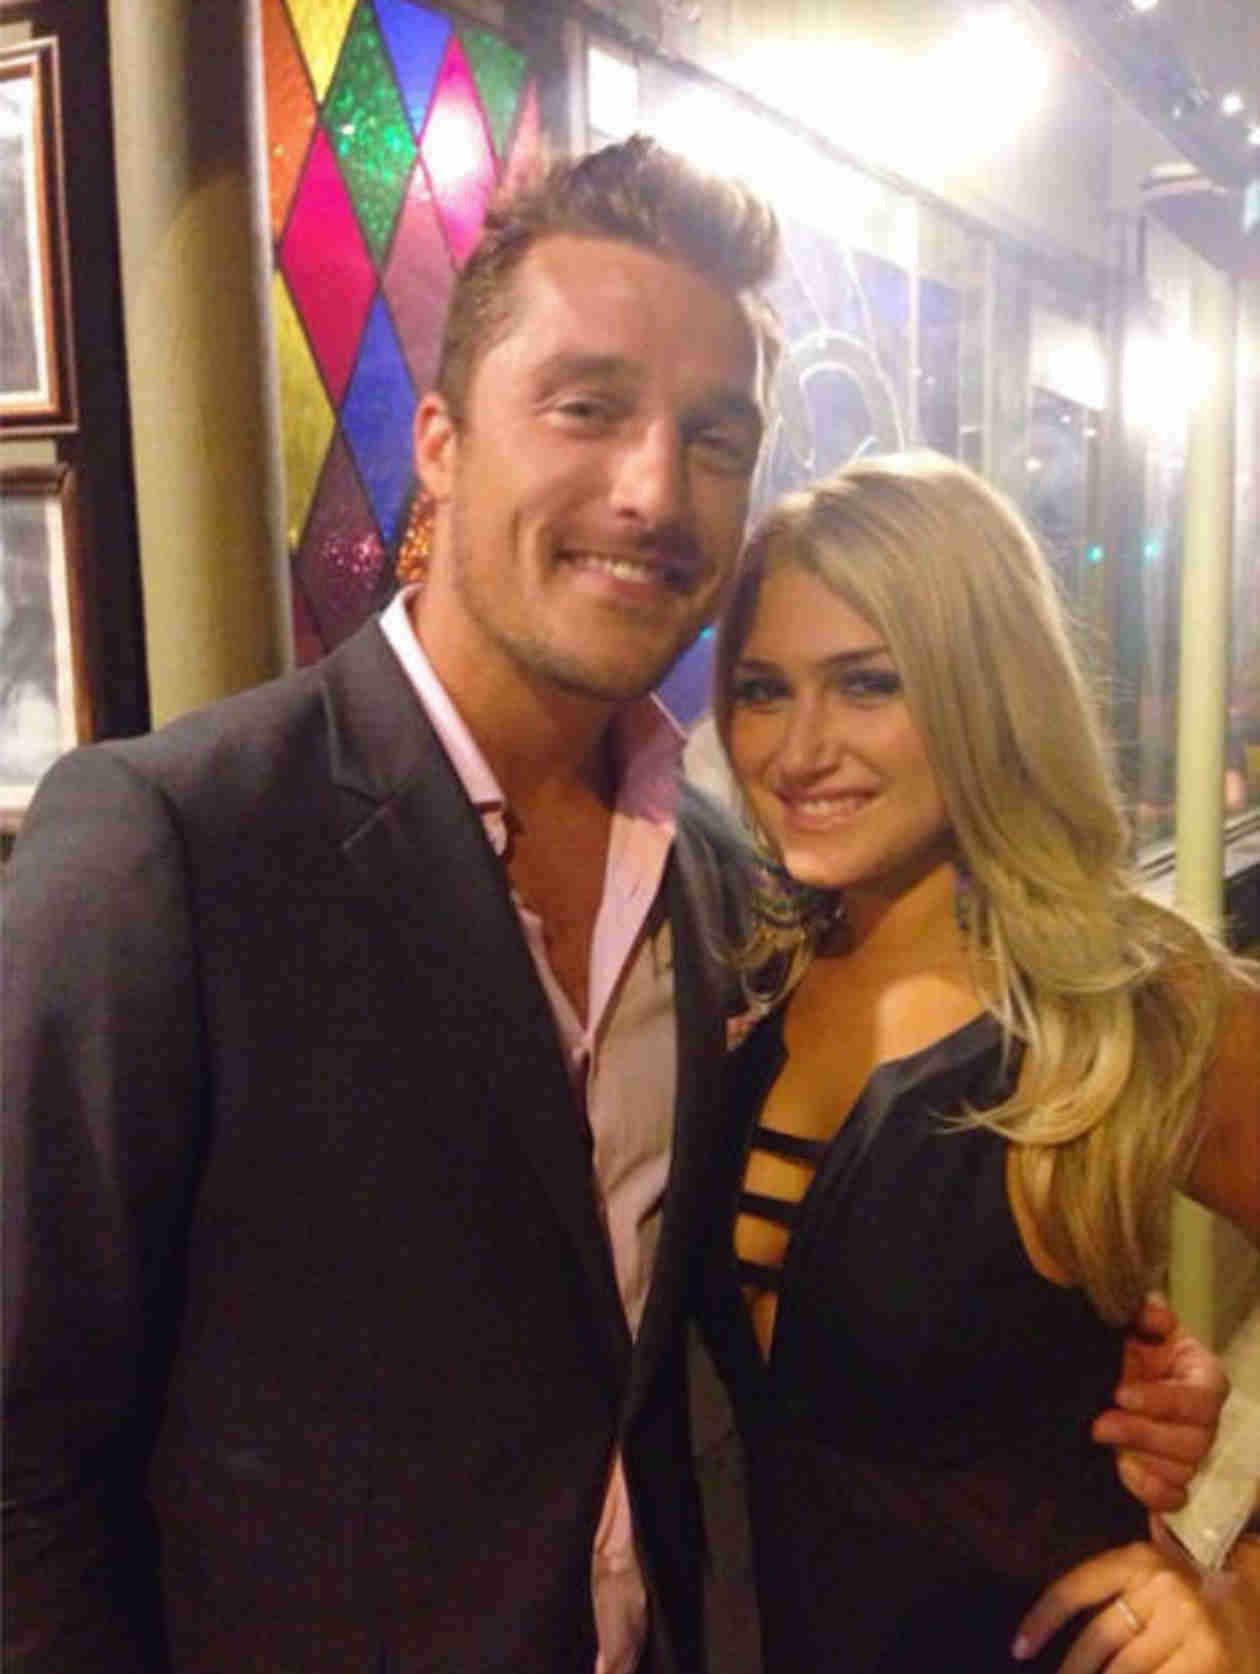 Elise Mosca Wishes She Was on Chris Soules' Season of The Bachelor